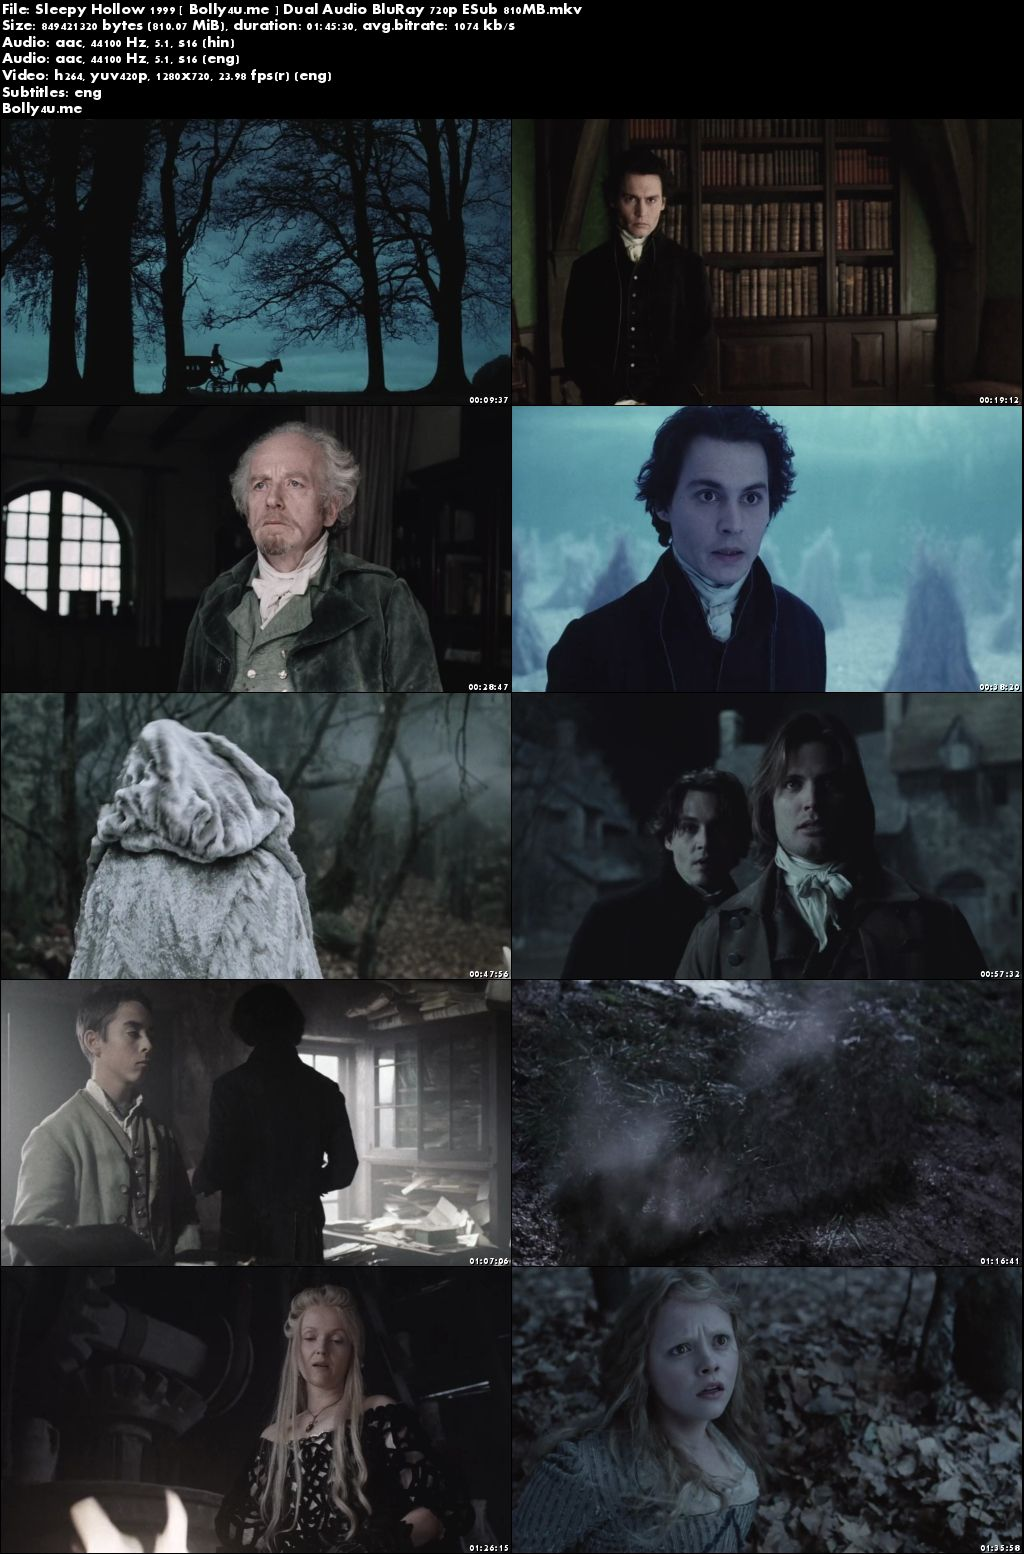 Sleepy Hollow 1999 BluRay 800MB Hindi Dual Audio 720p ESub Download